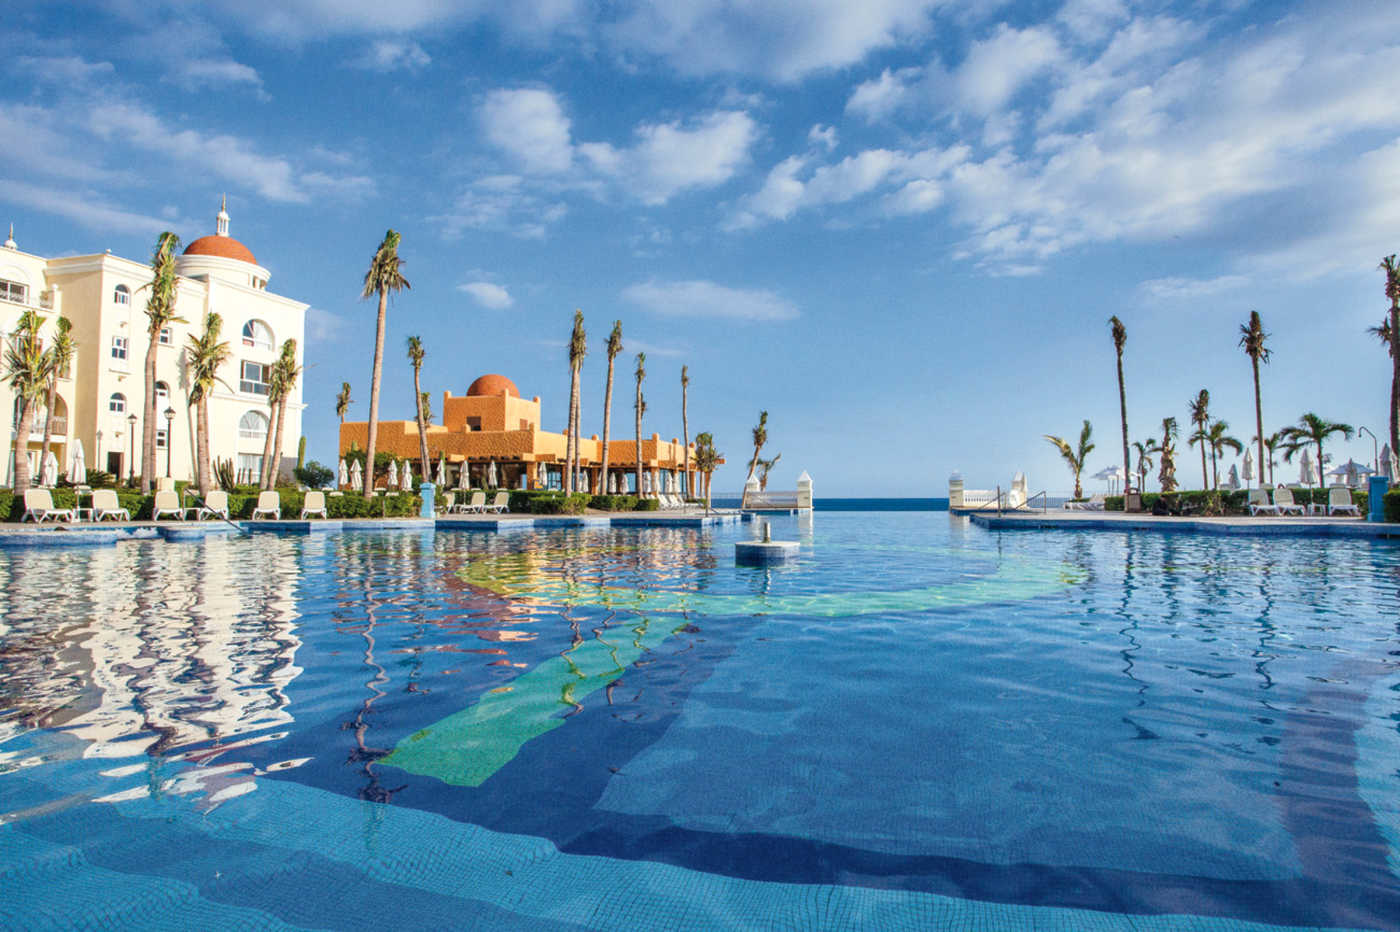 Wake up to the pacific ocean at the hotel riu palace cabo san lucas a 5 star resort hotel surrounded by splendid gardens with beautiful views of the beach